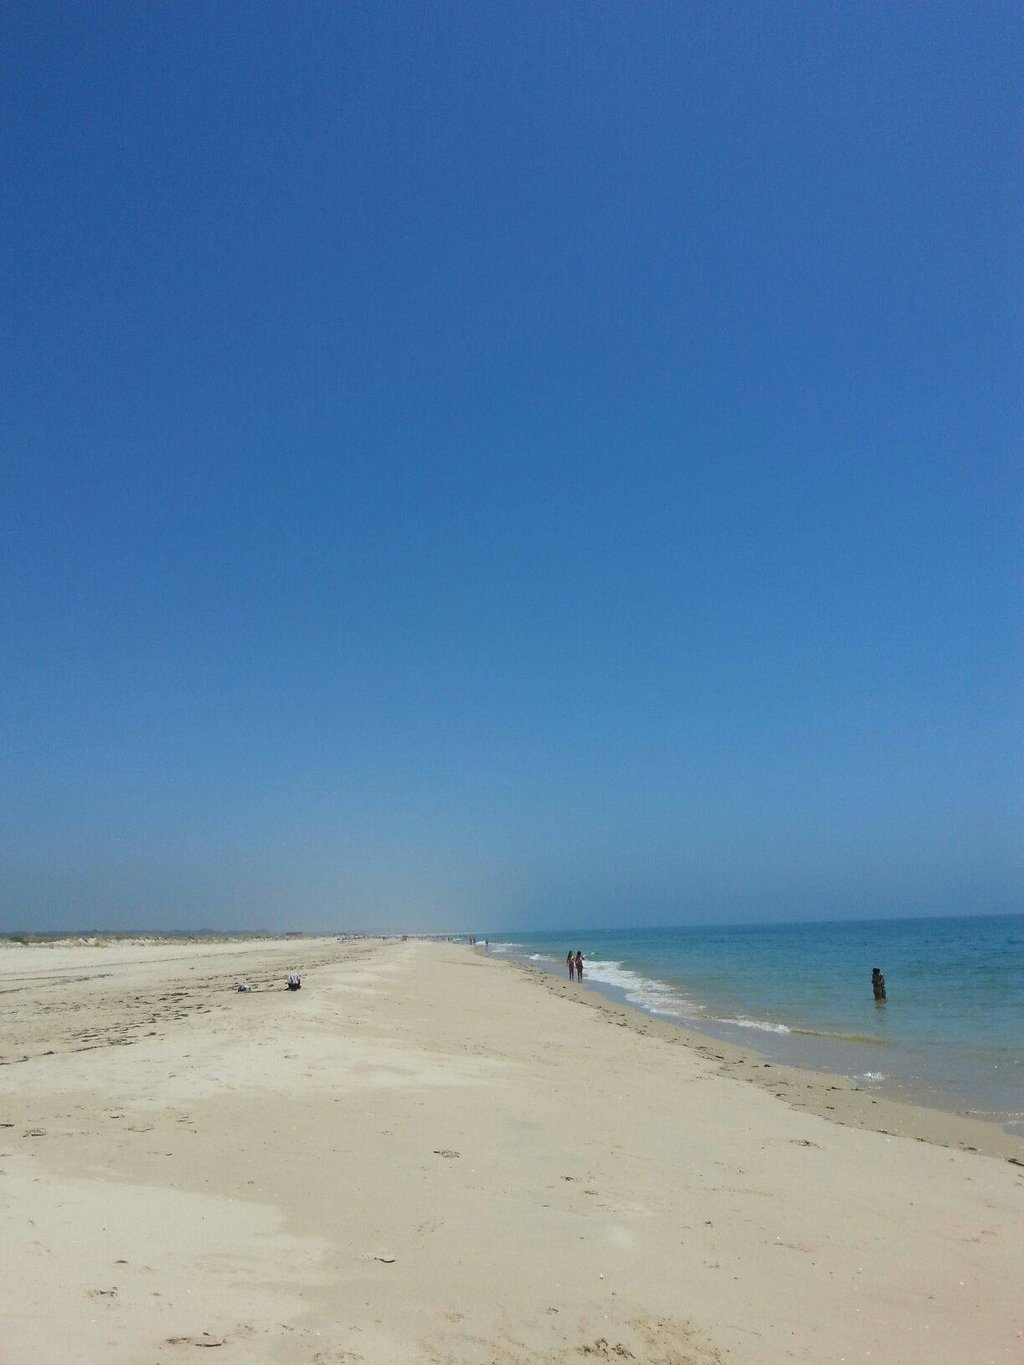 Things To Do in Praia da Alagoa, Restaurants in Praia da Alagoa